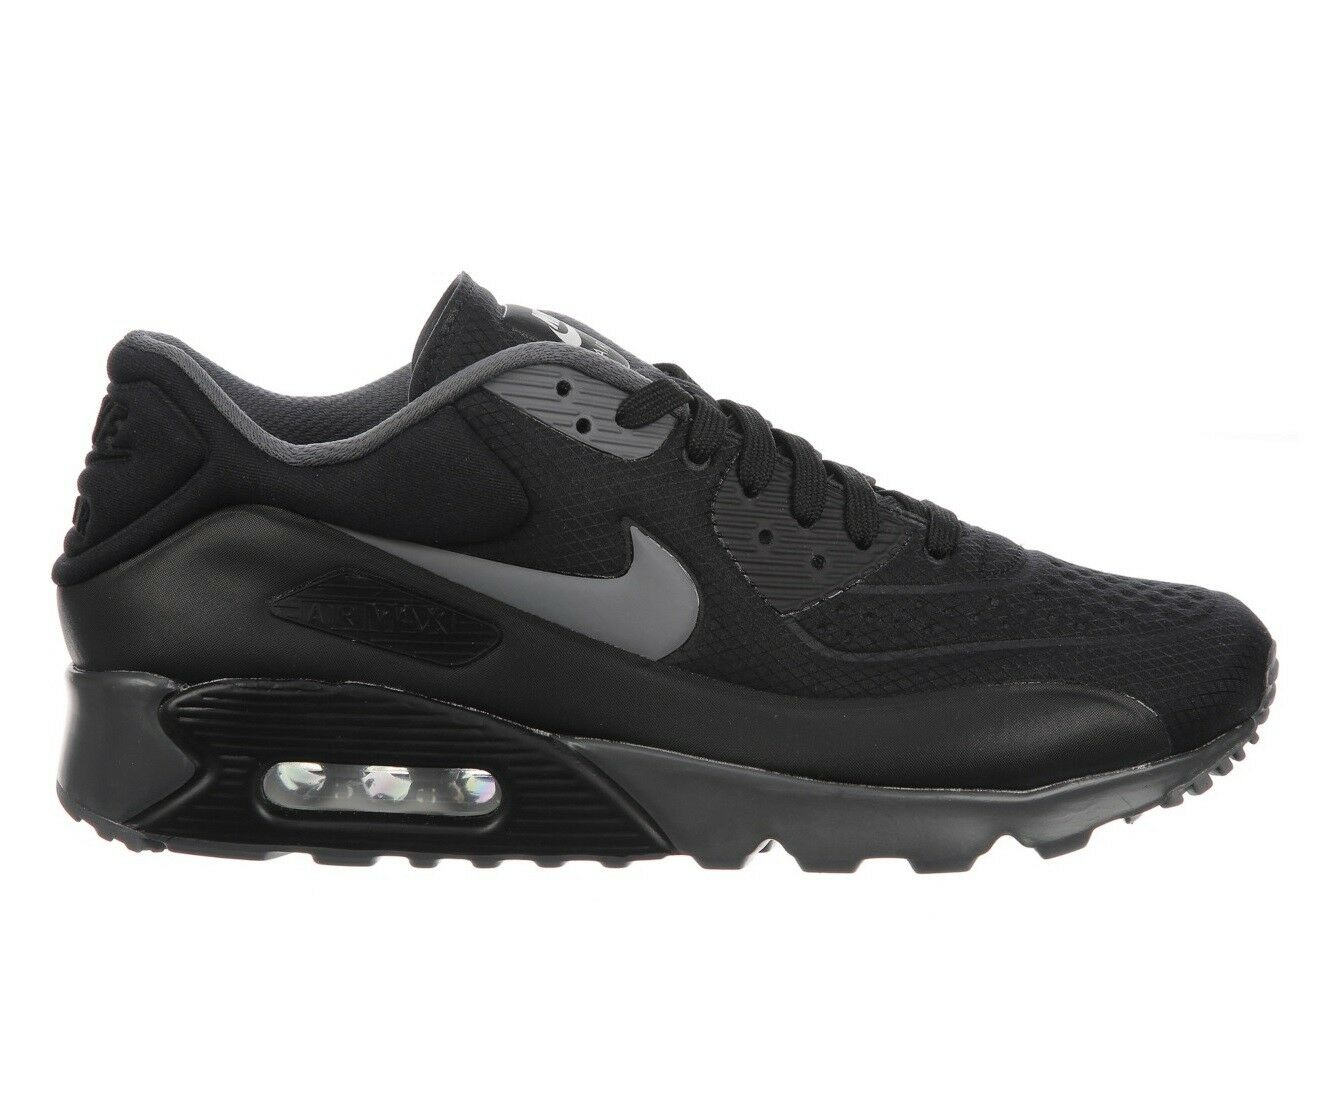 Nike Air Max 90 Ultra SE Mens 845039-003 Black Dark Grey Running Shoes Comfortable Special limited time